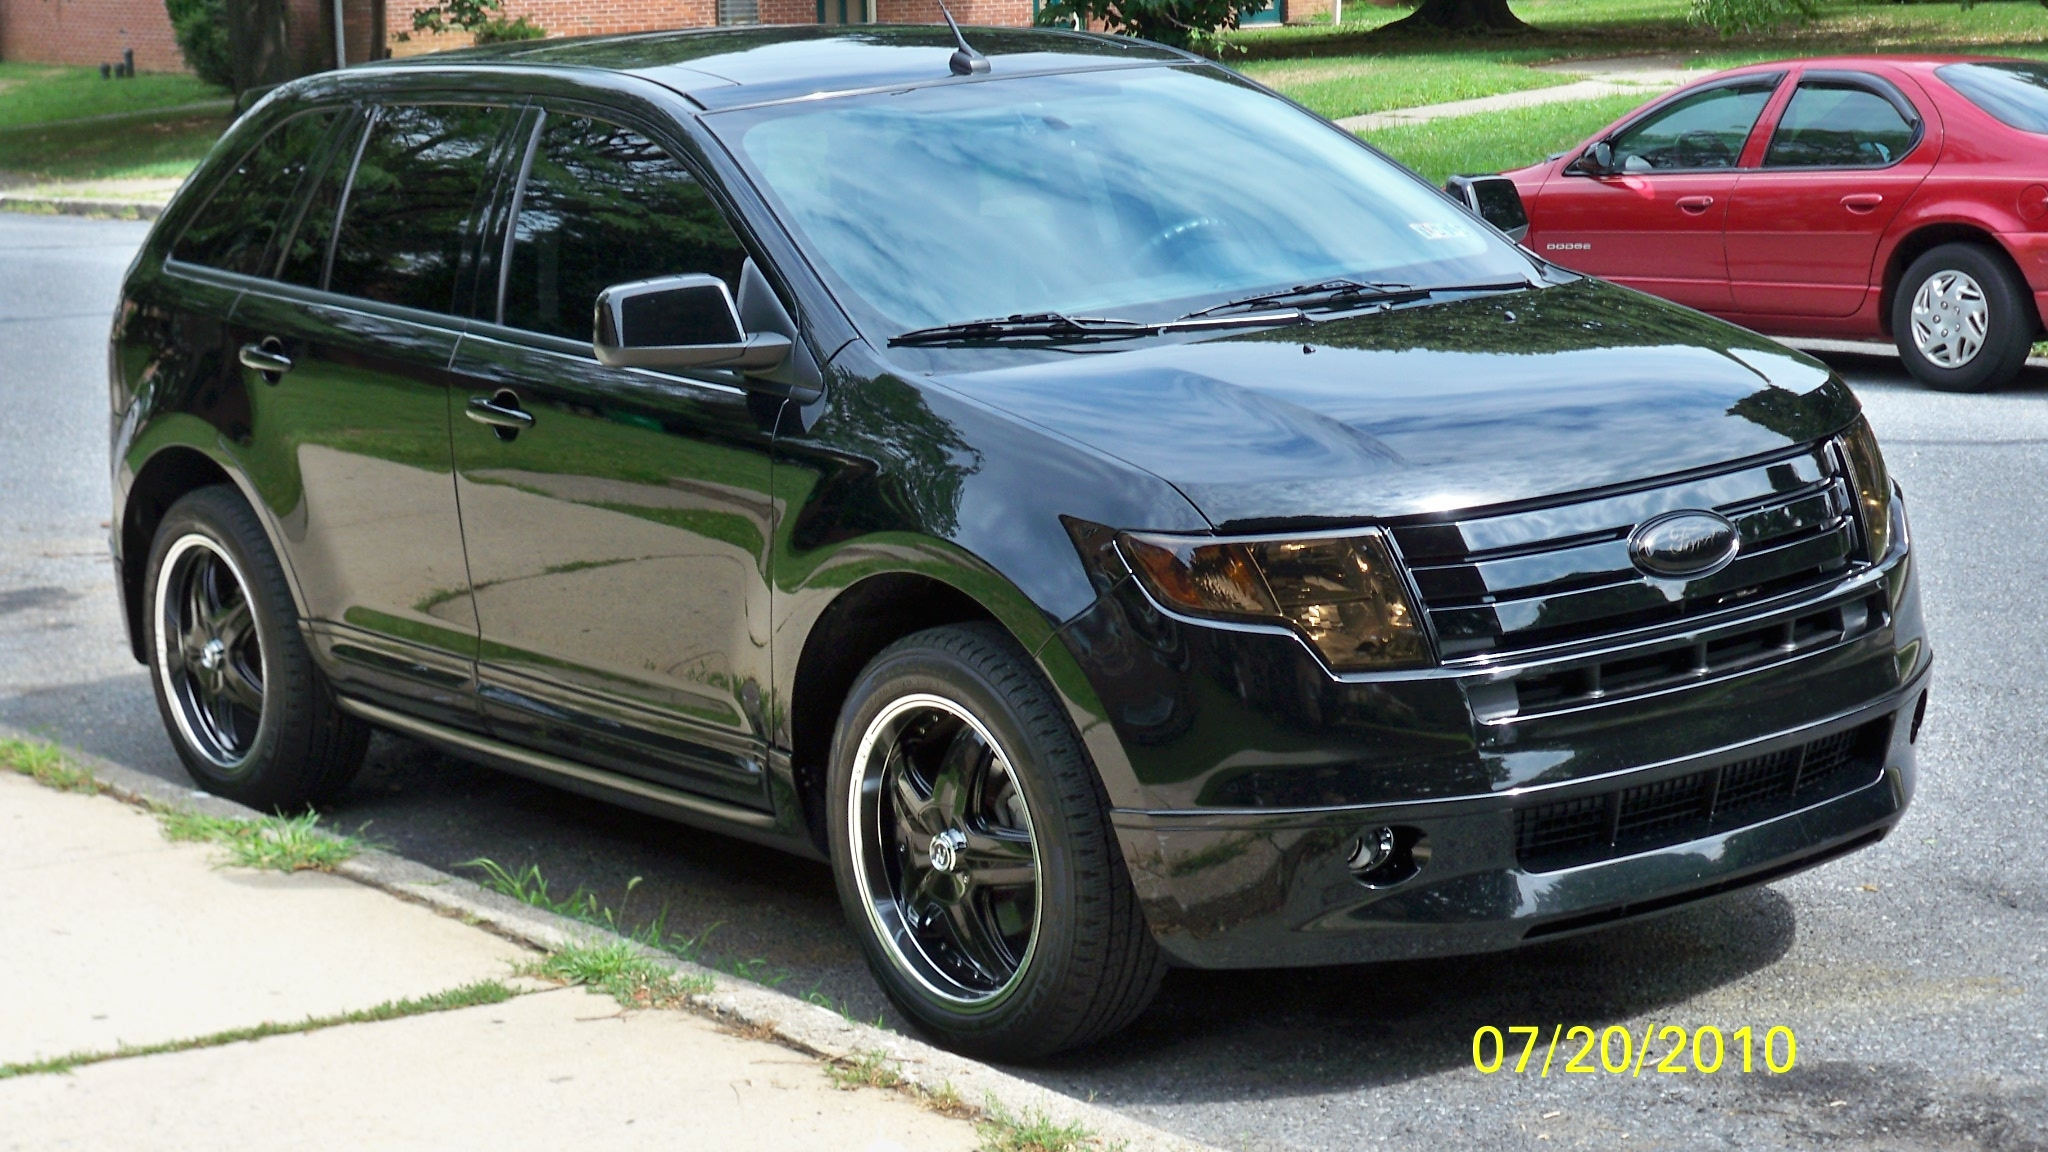 Bosco911 2008 Ford Edgelimited Sport Utility 4d Specs Photos Modification Info At Cardomain